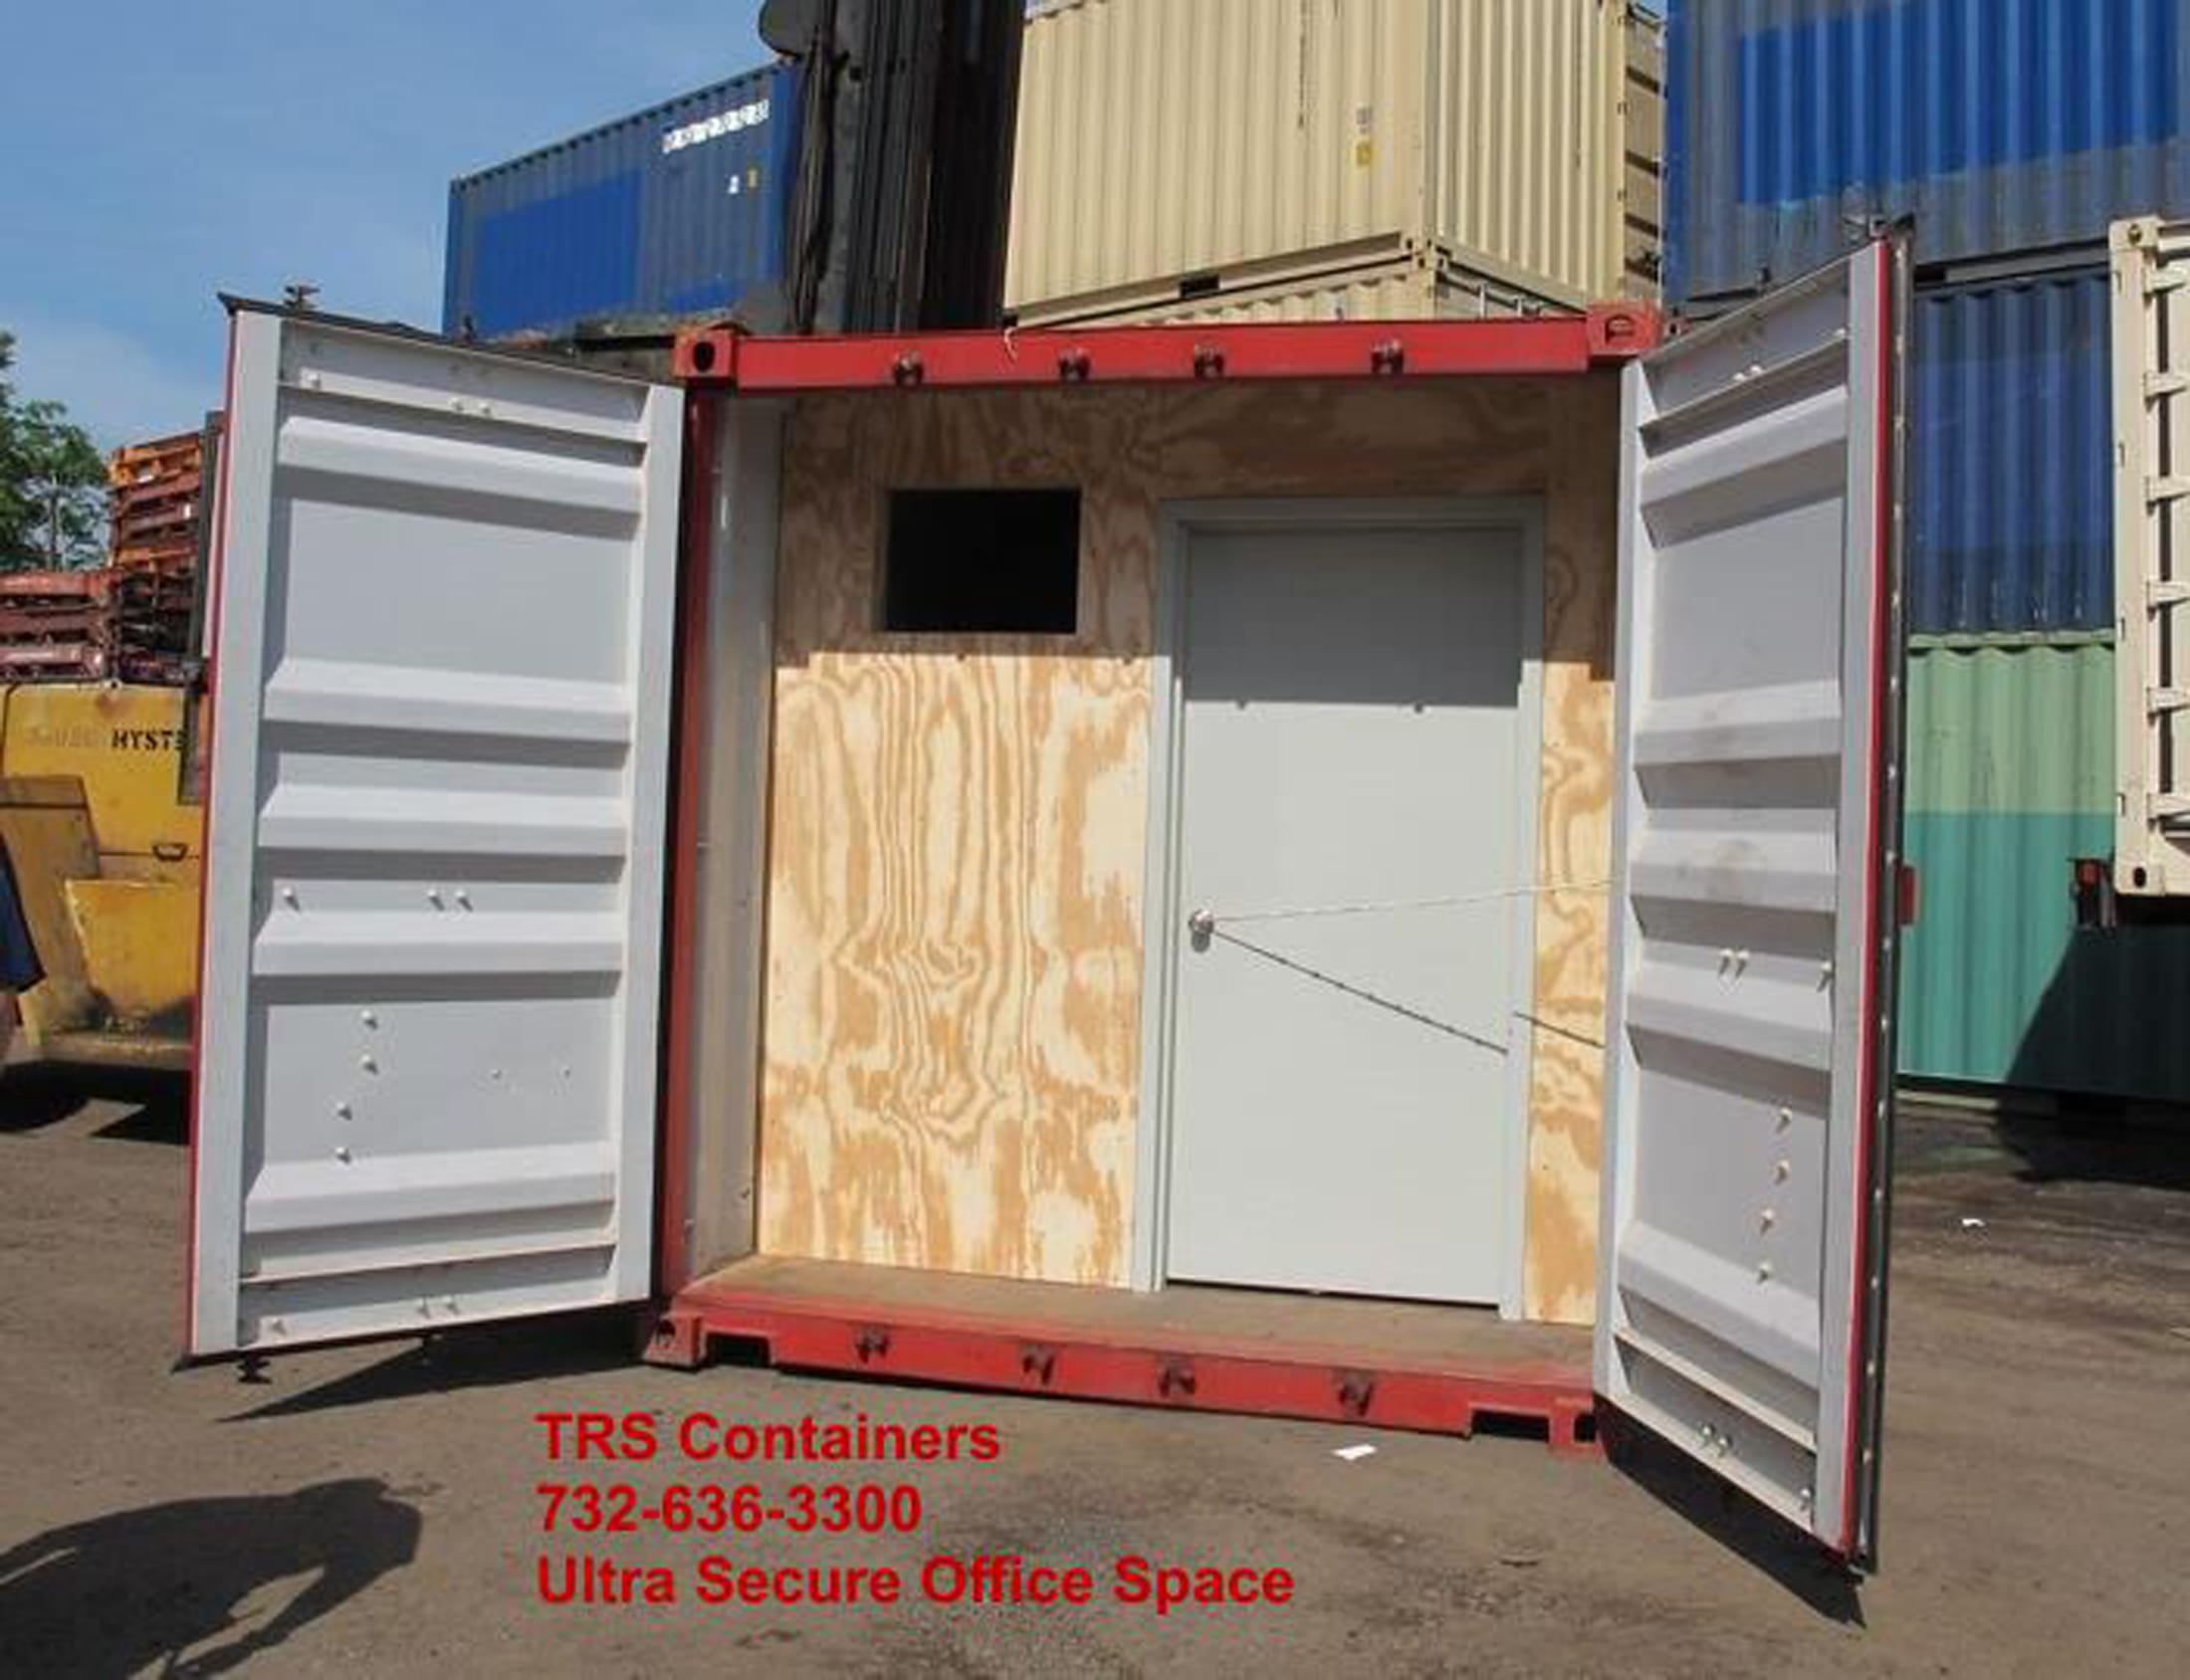 TRS containers can modify an office container totally secure with inteior door for access during the day